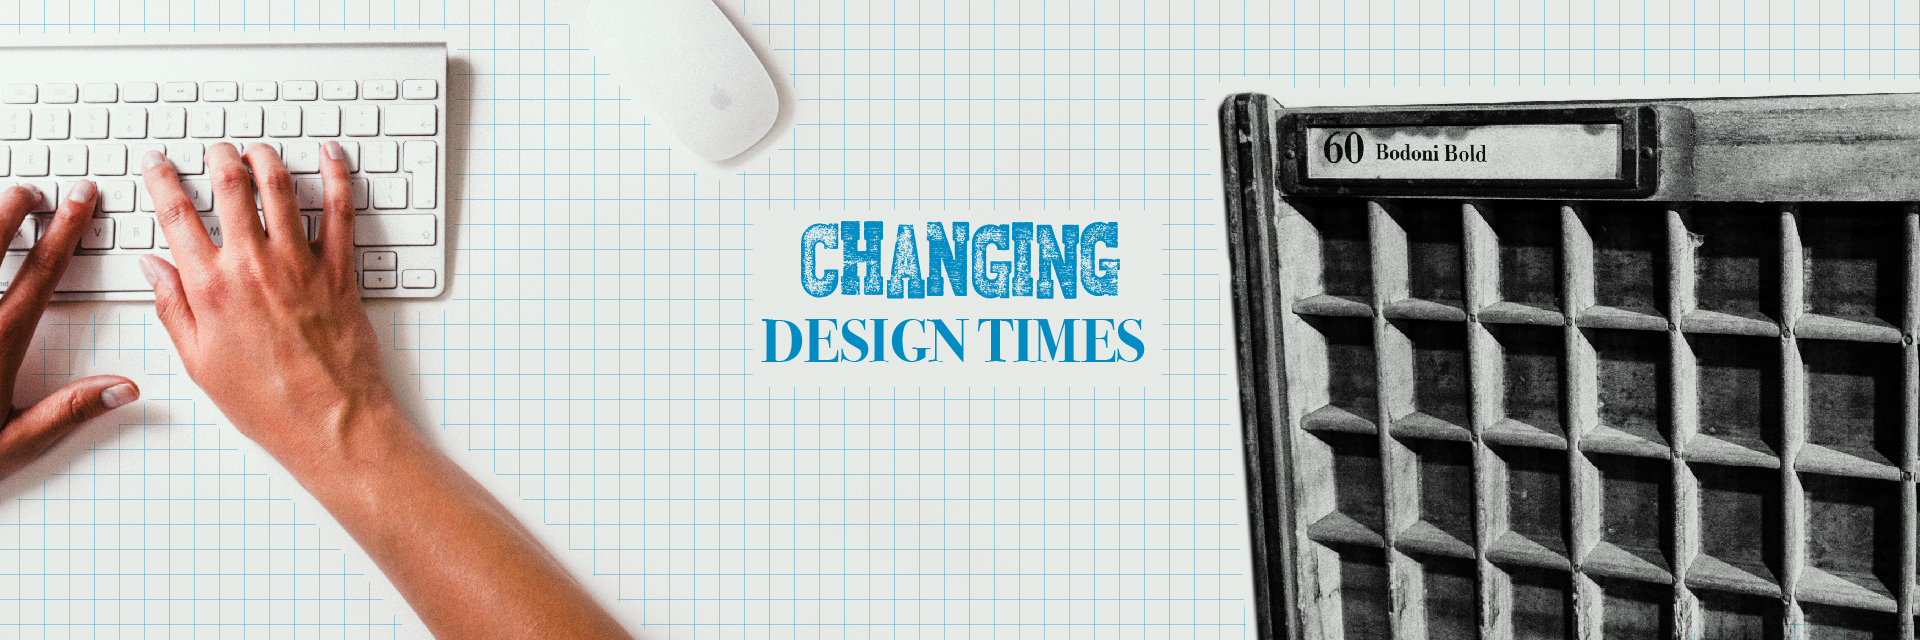 Changing Design Times